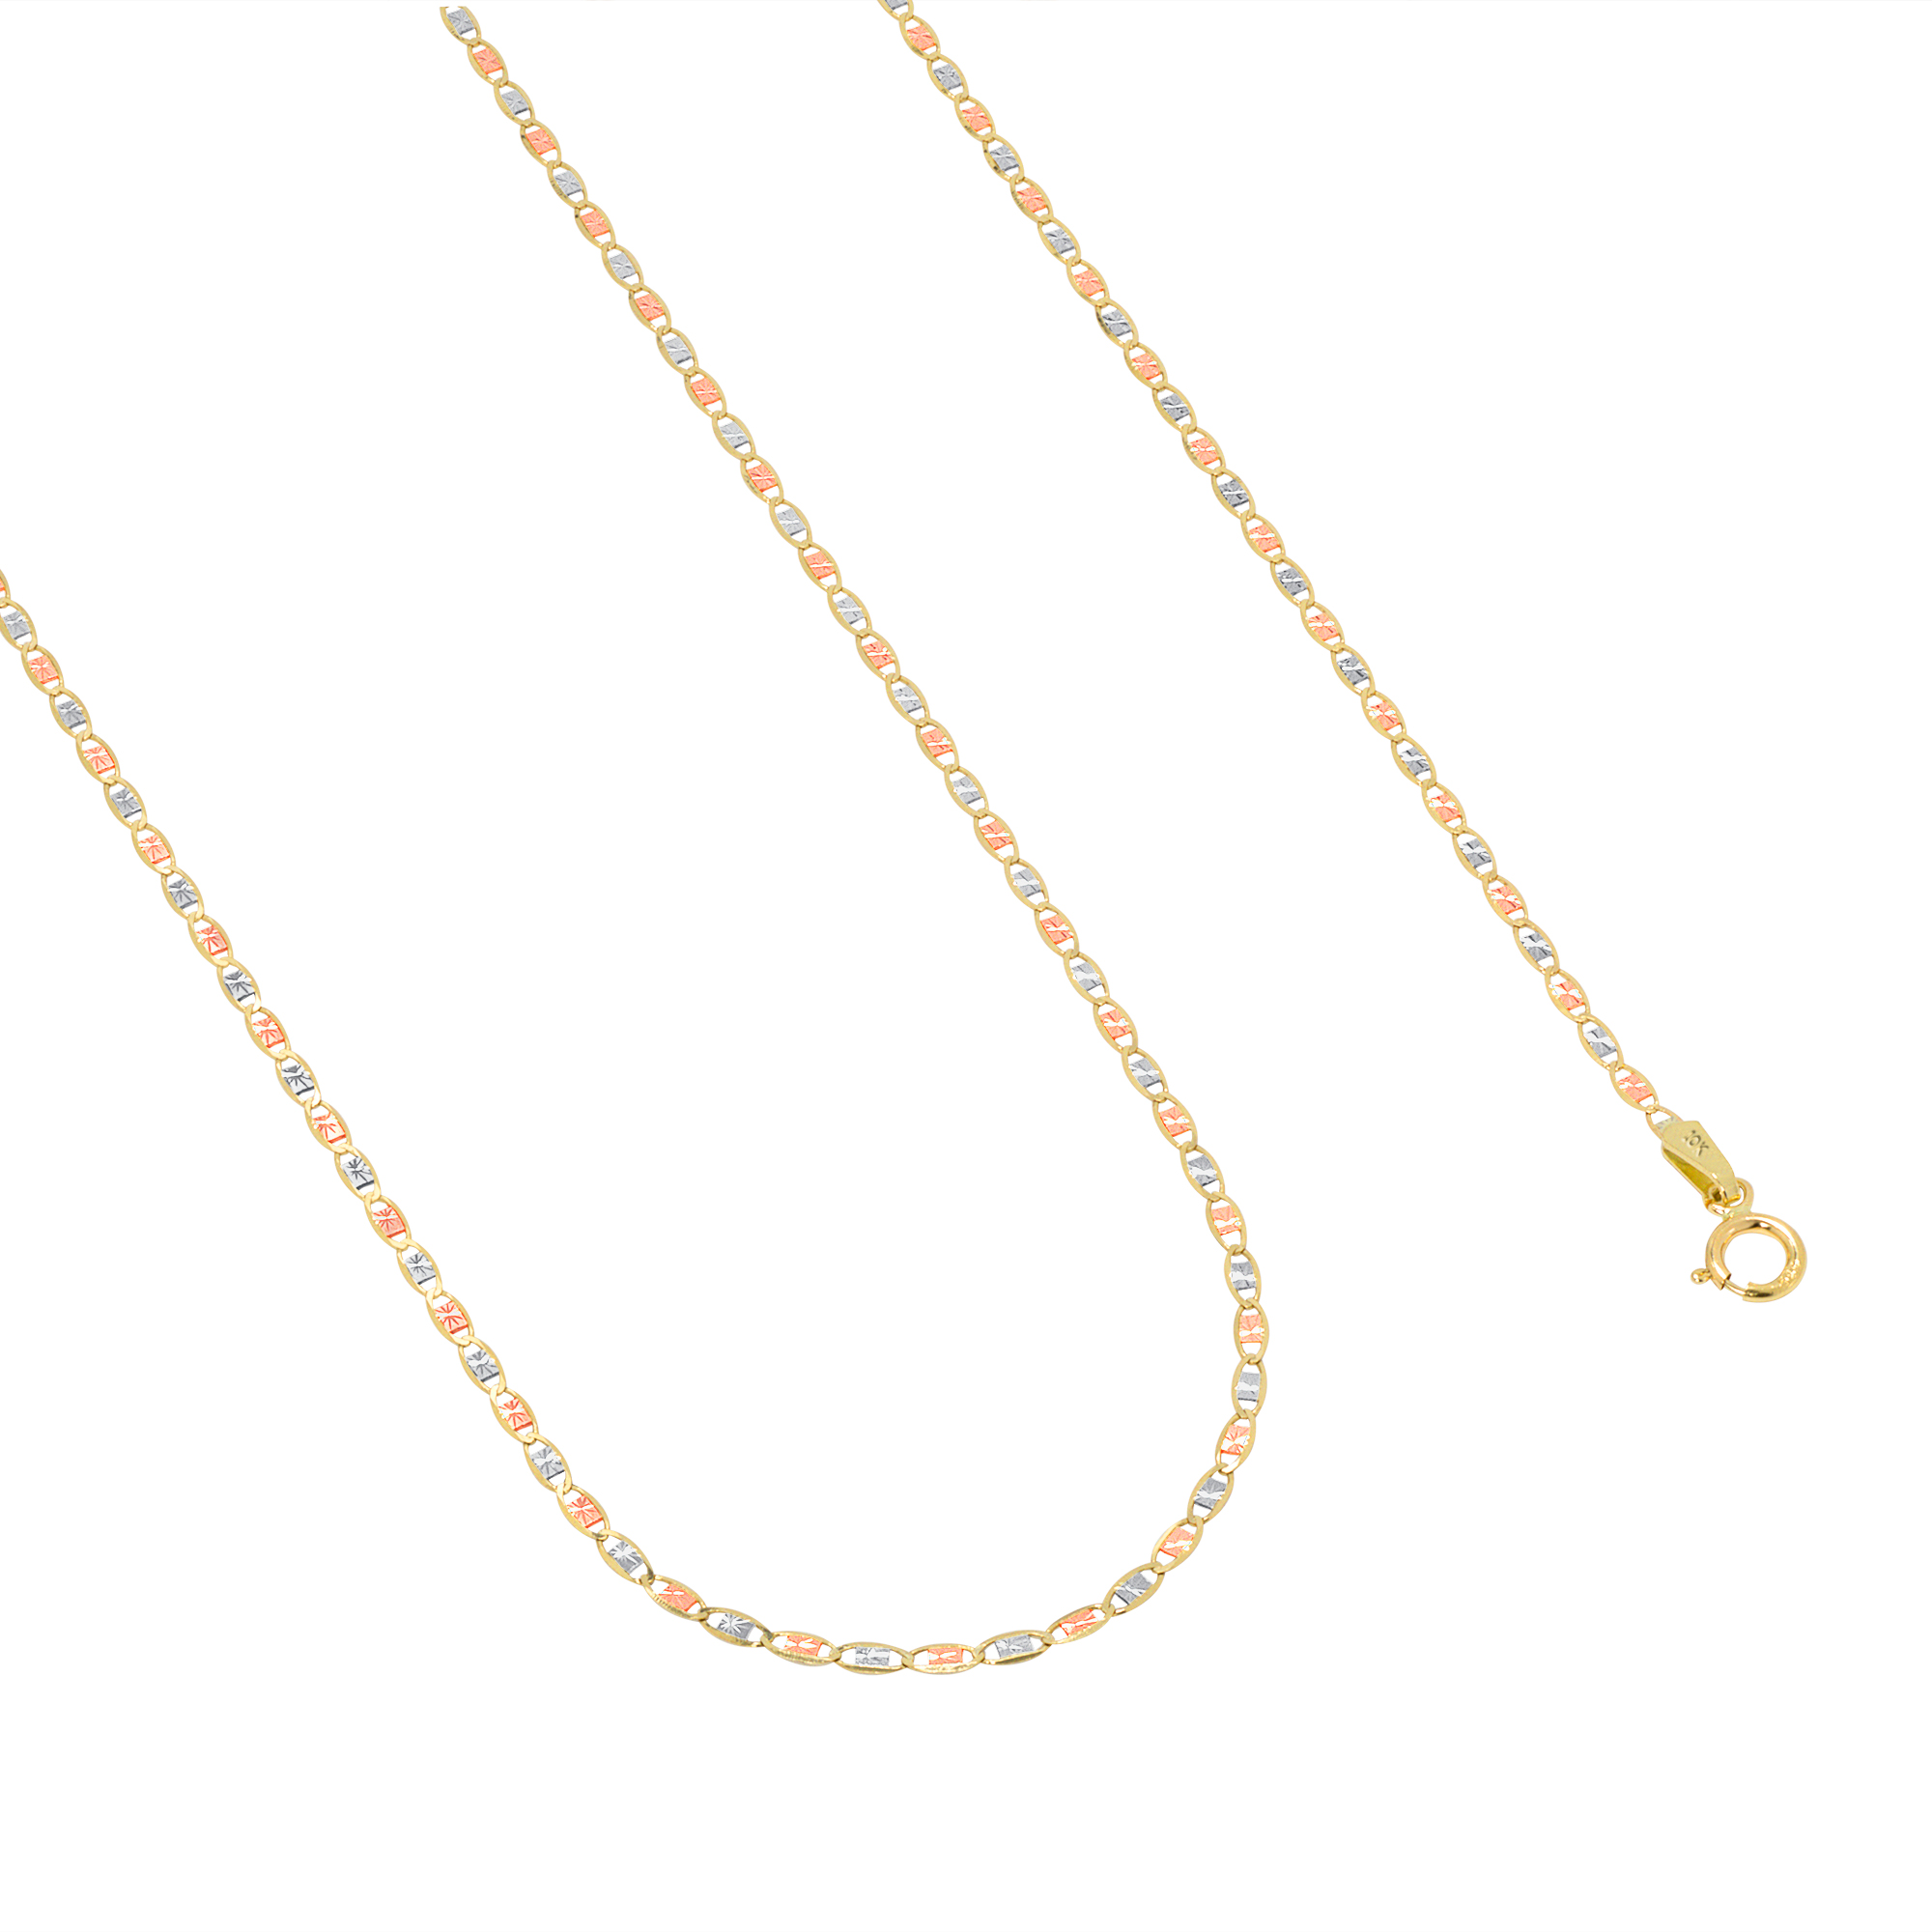 10K-Solid-Tri-Yellow-Rose-White-Gold-Thin-1-5mm-Valentino-Chain-Necklace-16-034-24-034 thumbnail 19